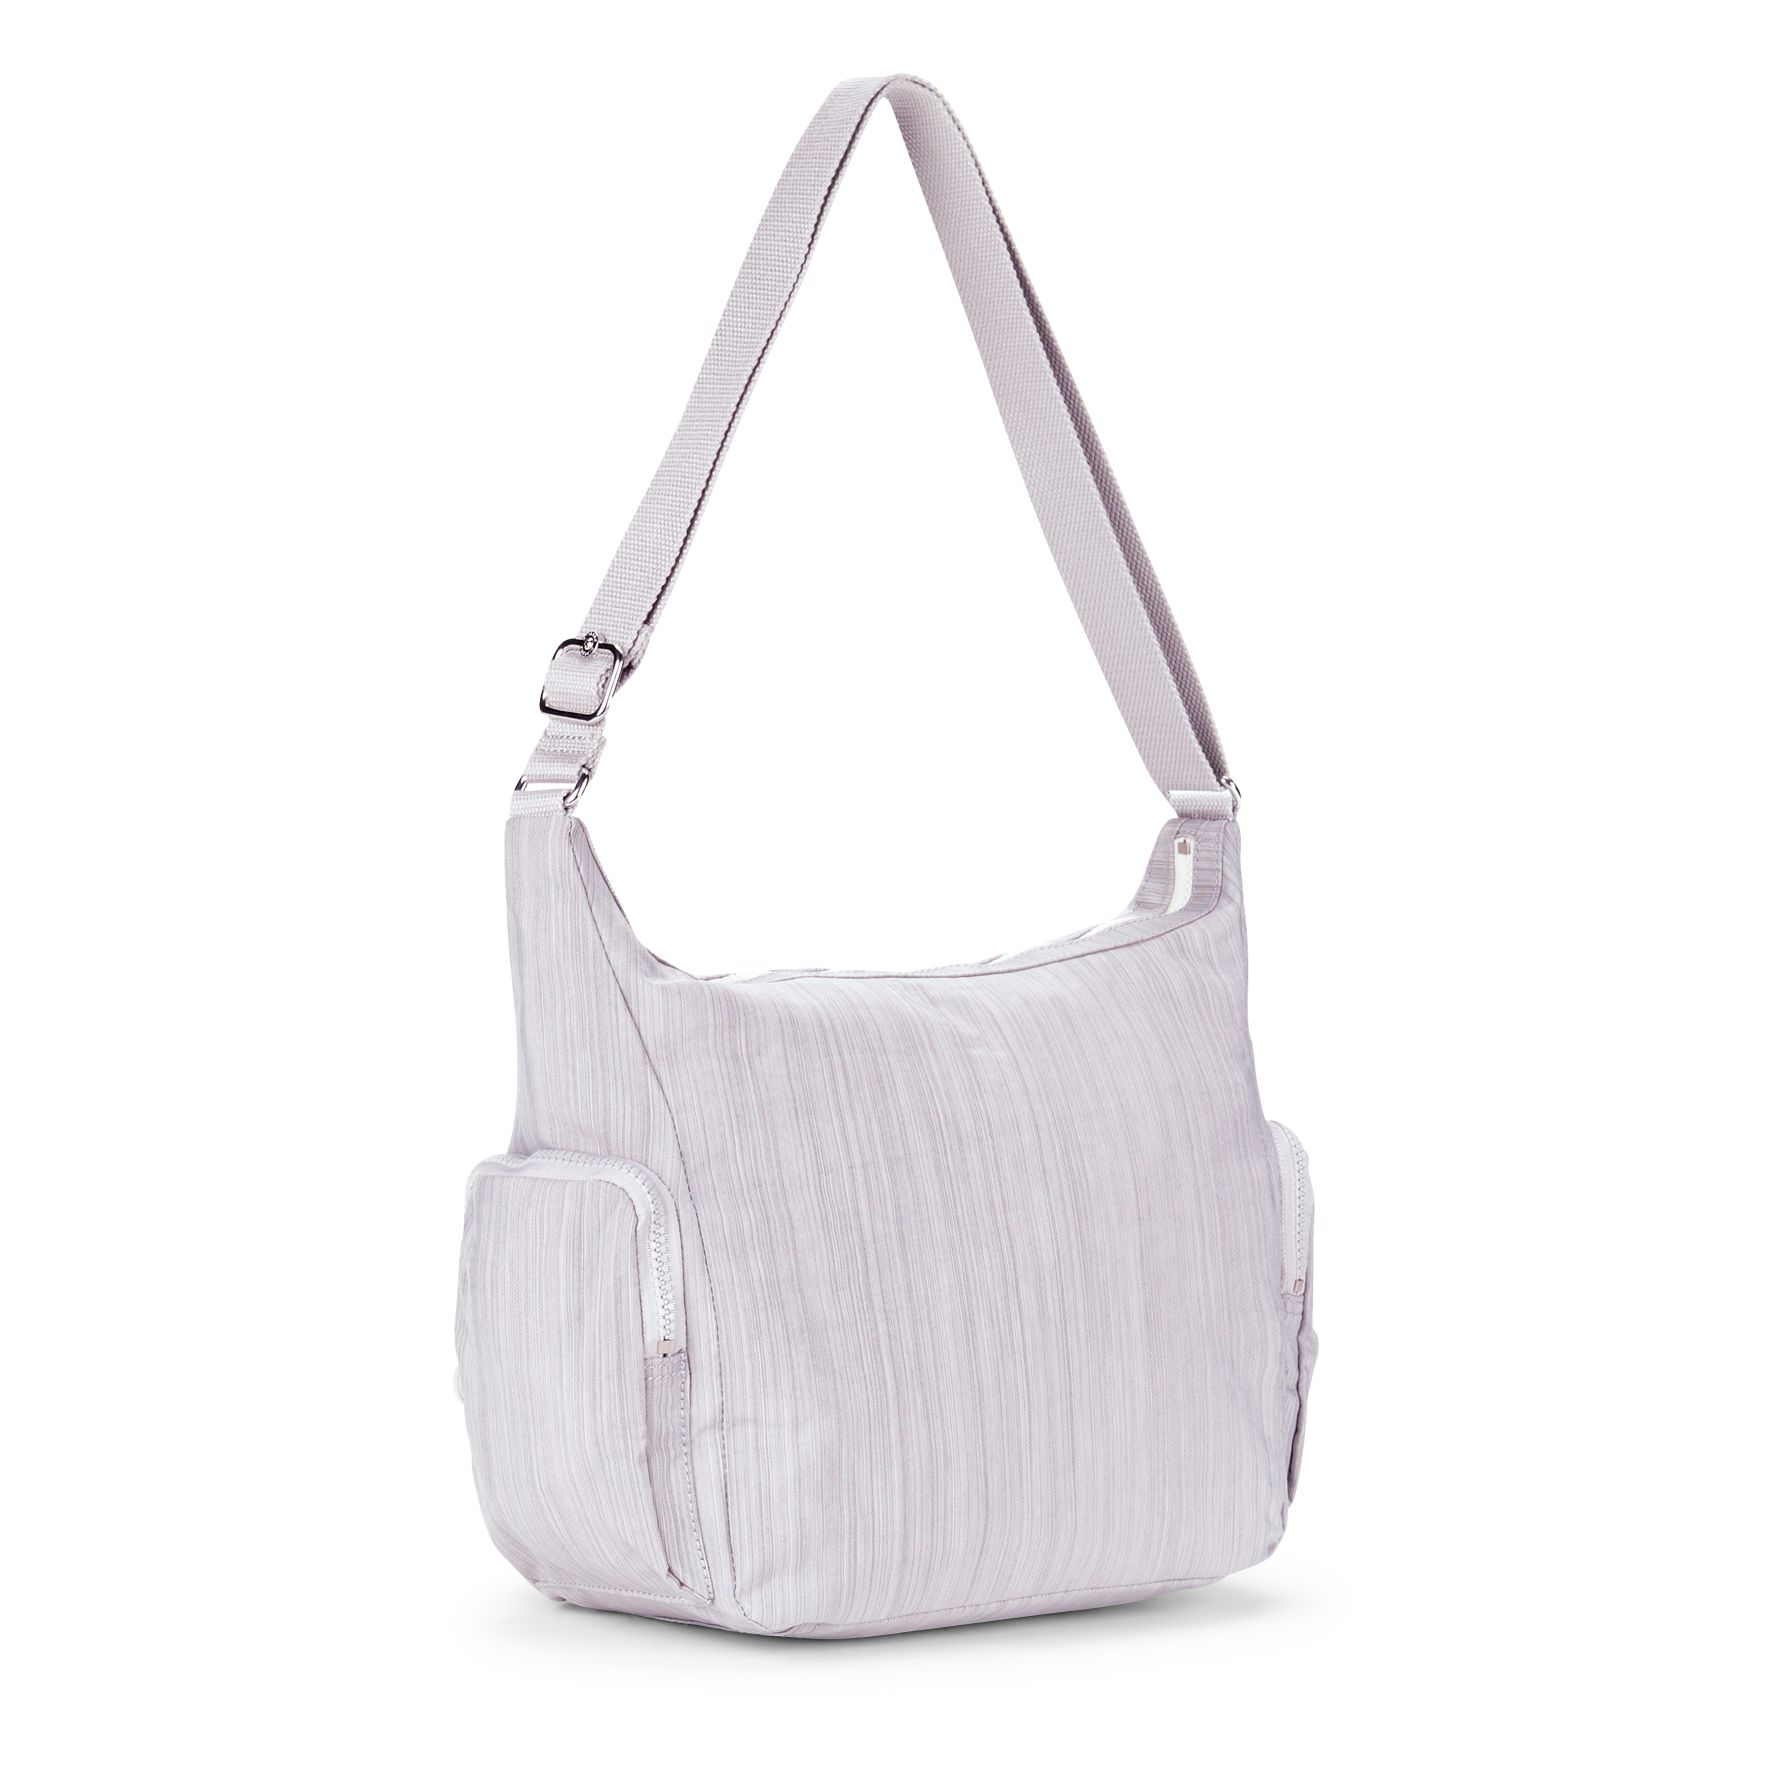 Gabbie medium shoulder bag